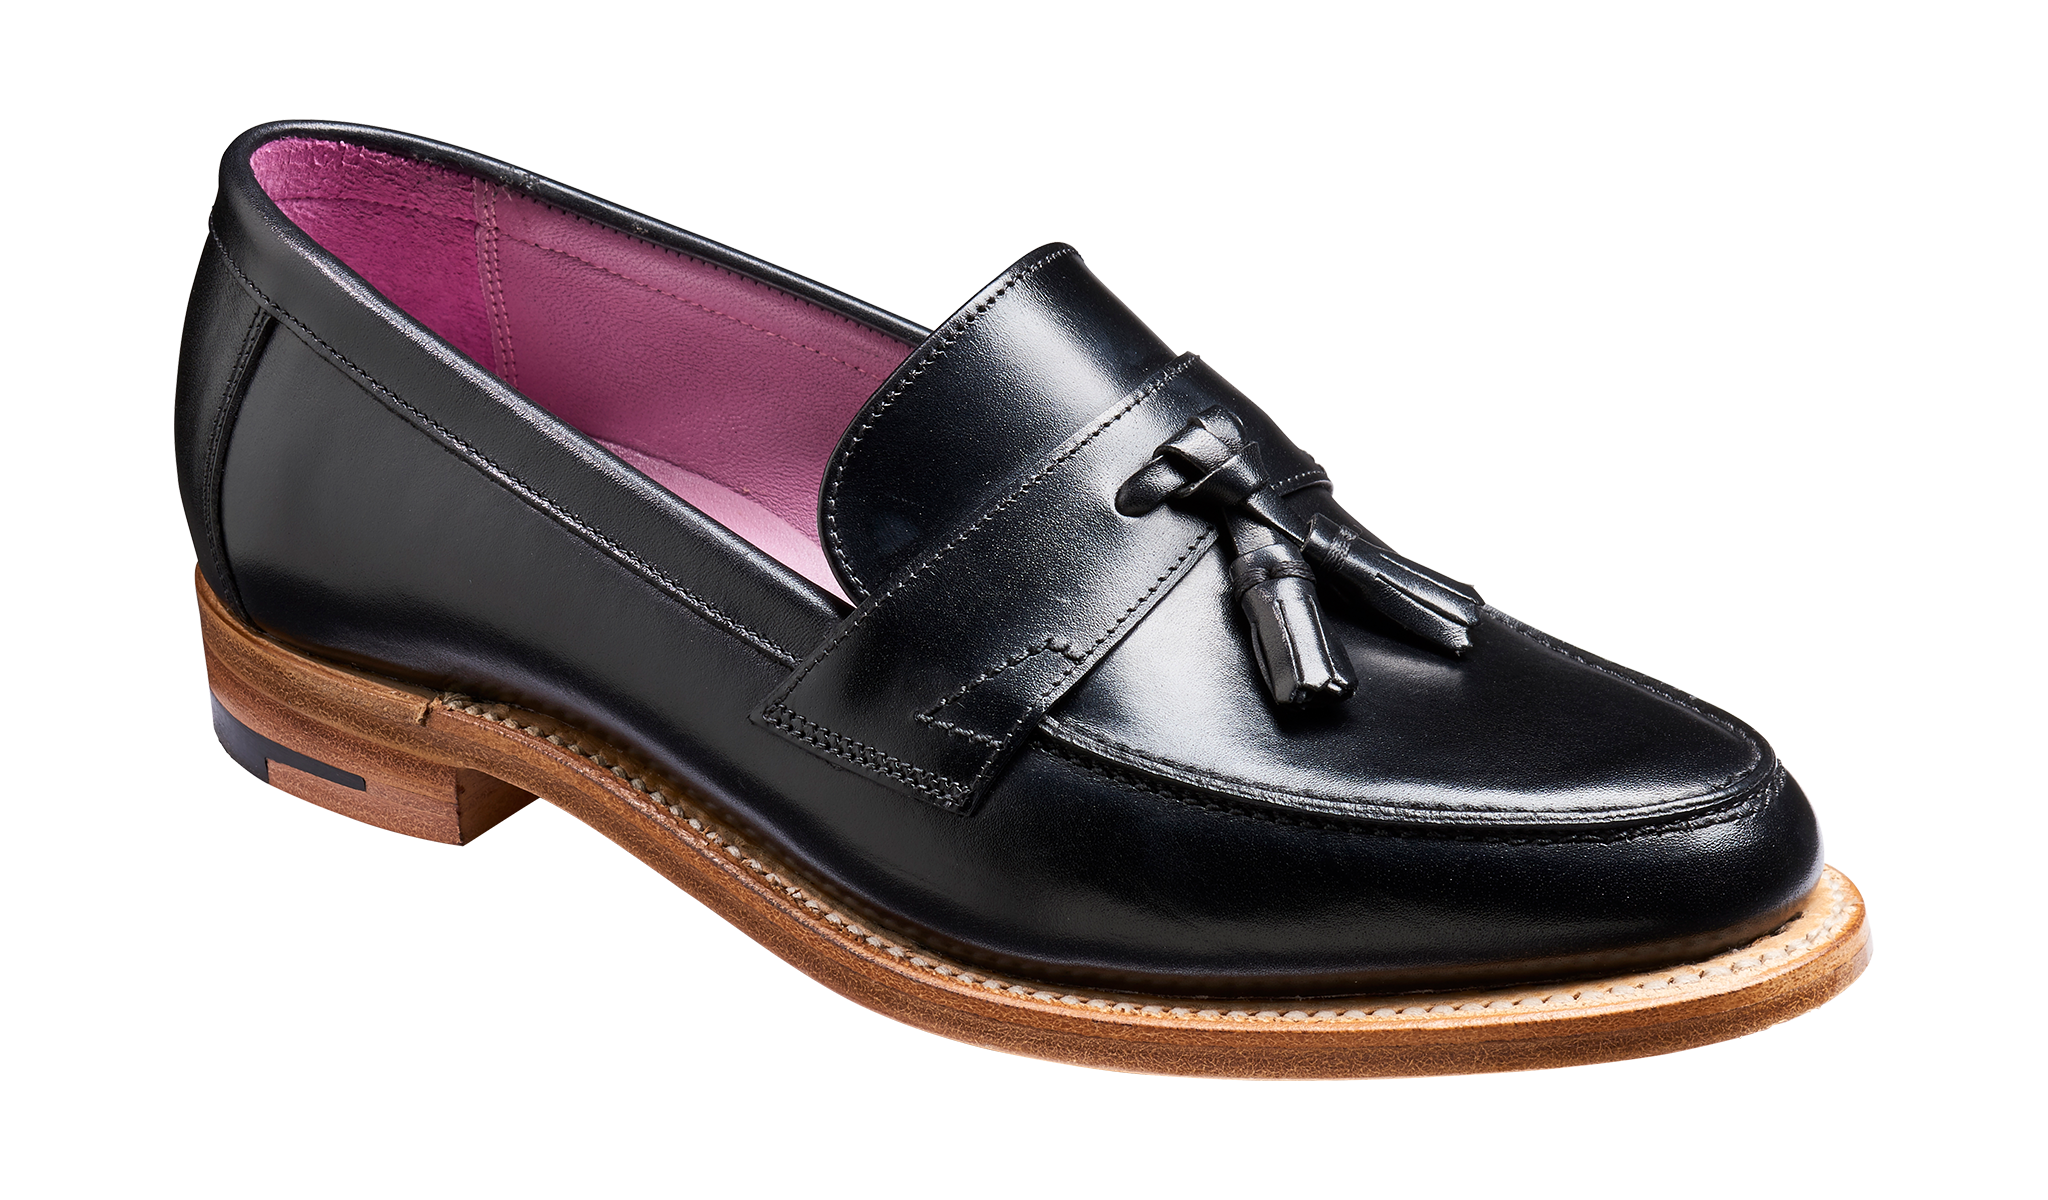 Imogen - Women's Tassel Loafer By Barker